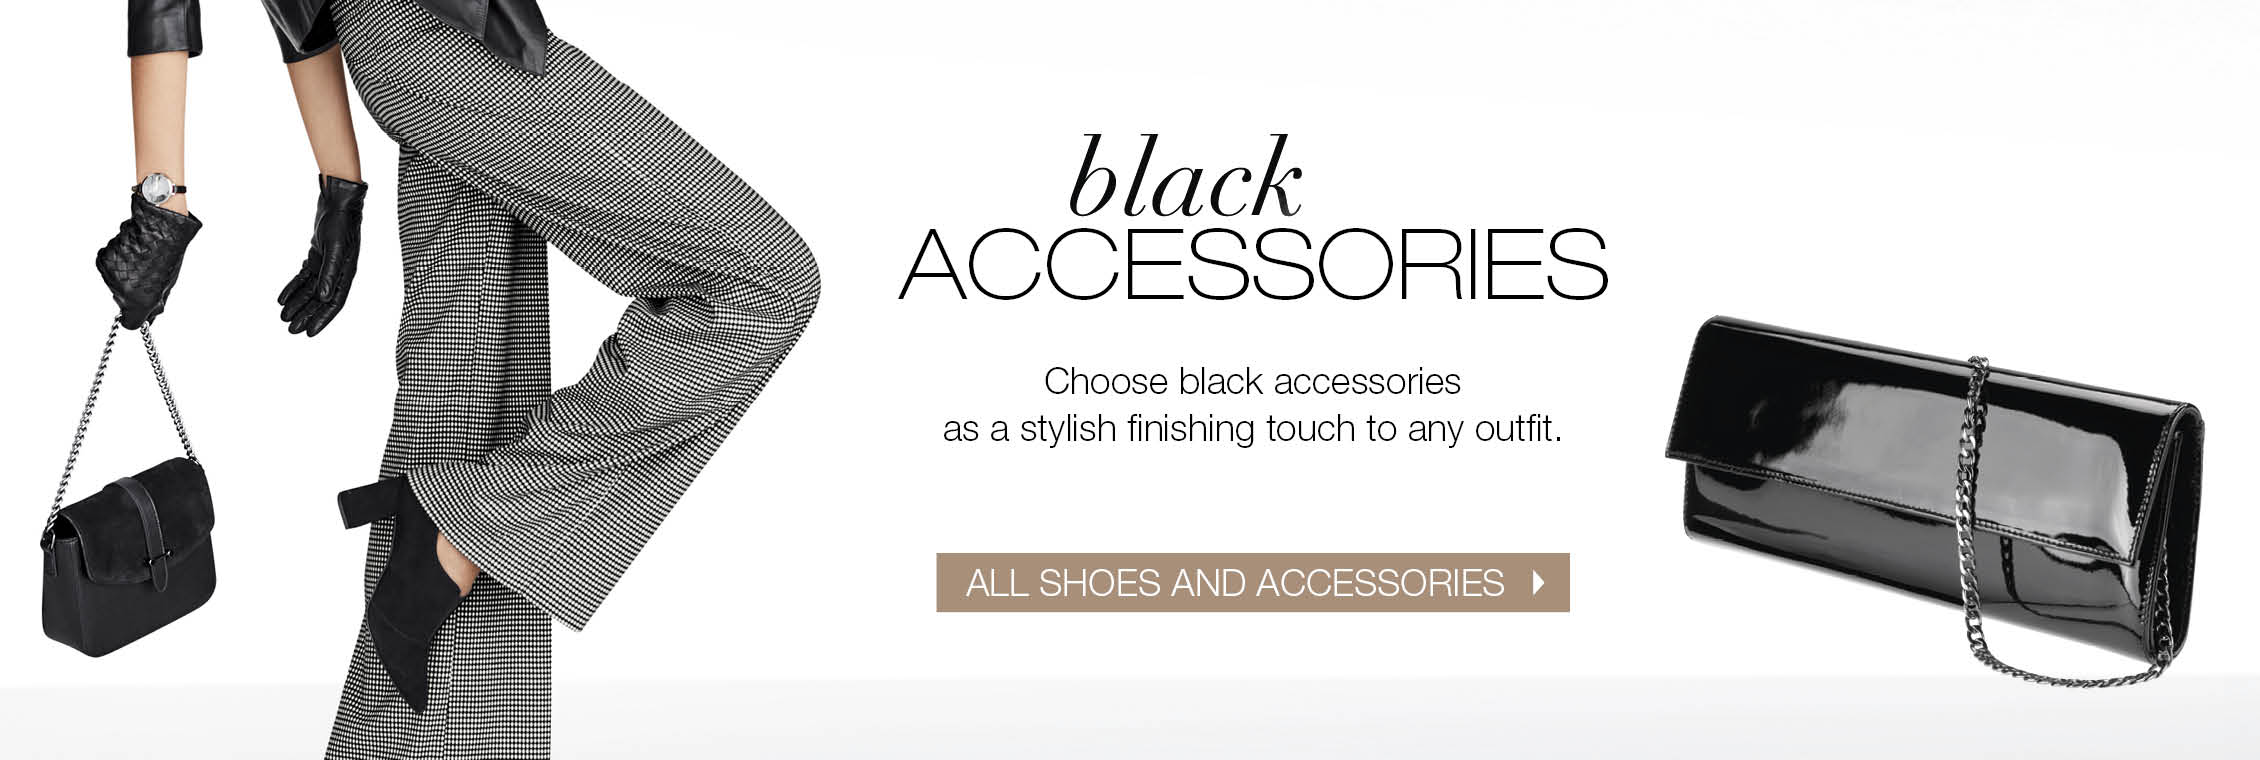 Shop black shoes and accessories